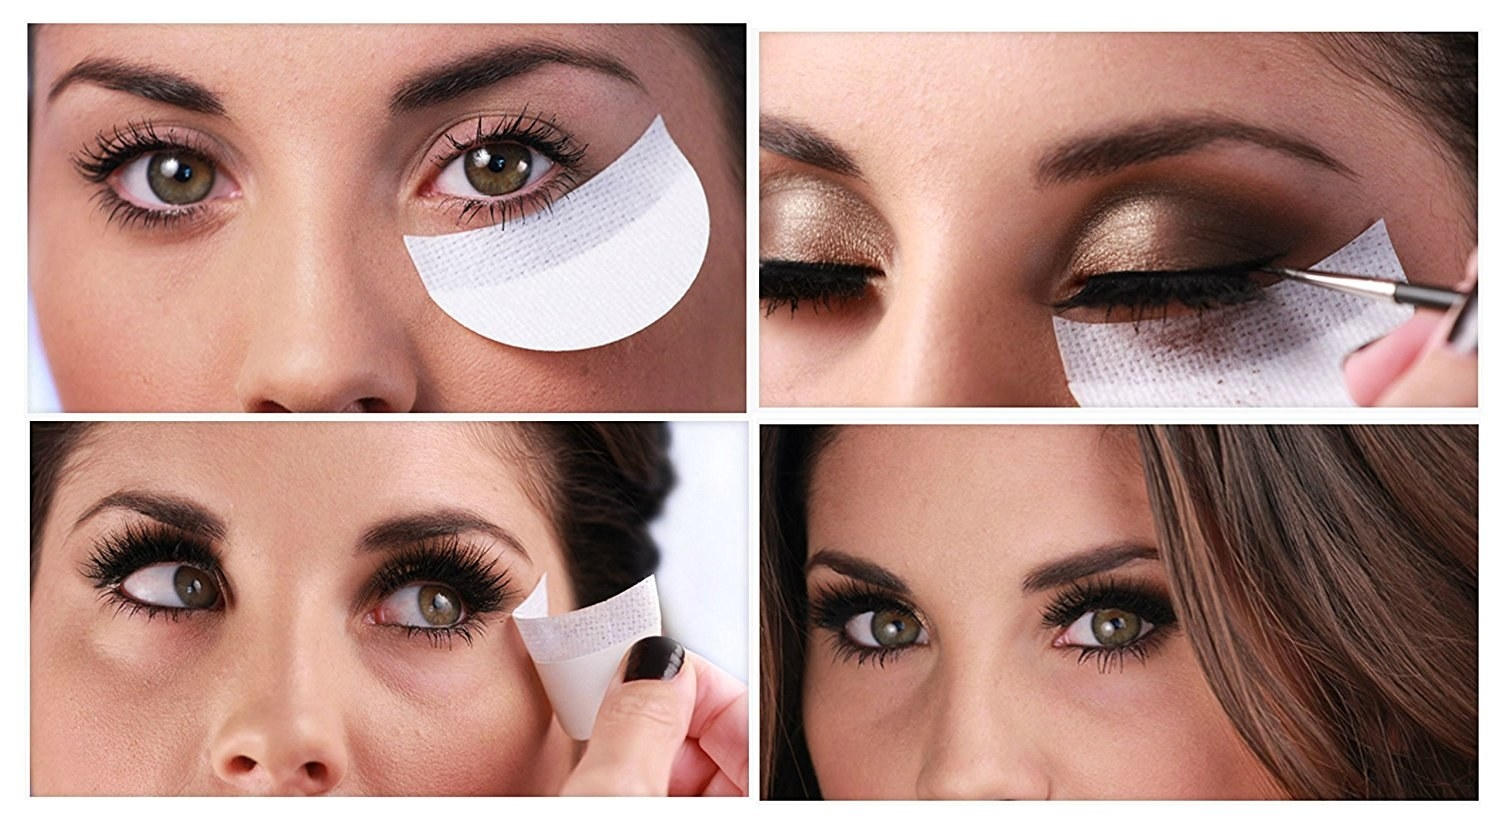 A diagram showing how to use: stick it on, apply shadow and liner, then remove